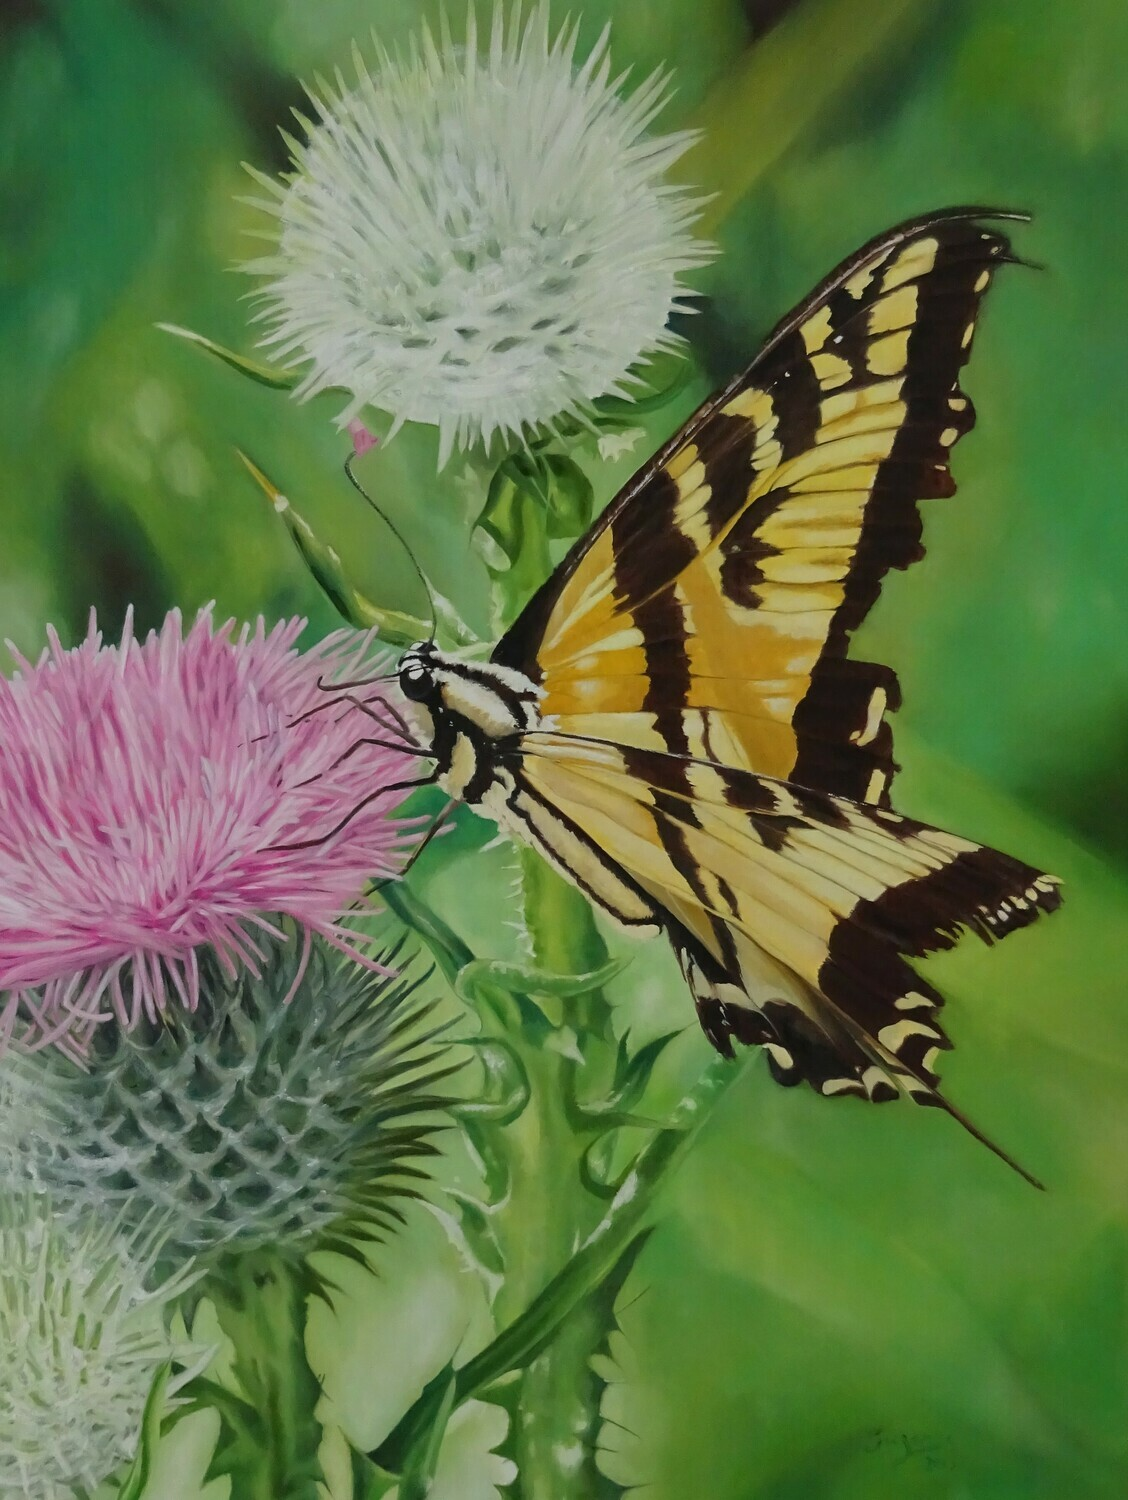 Rebirth. Tiger Swallowtail Butterfly